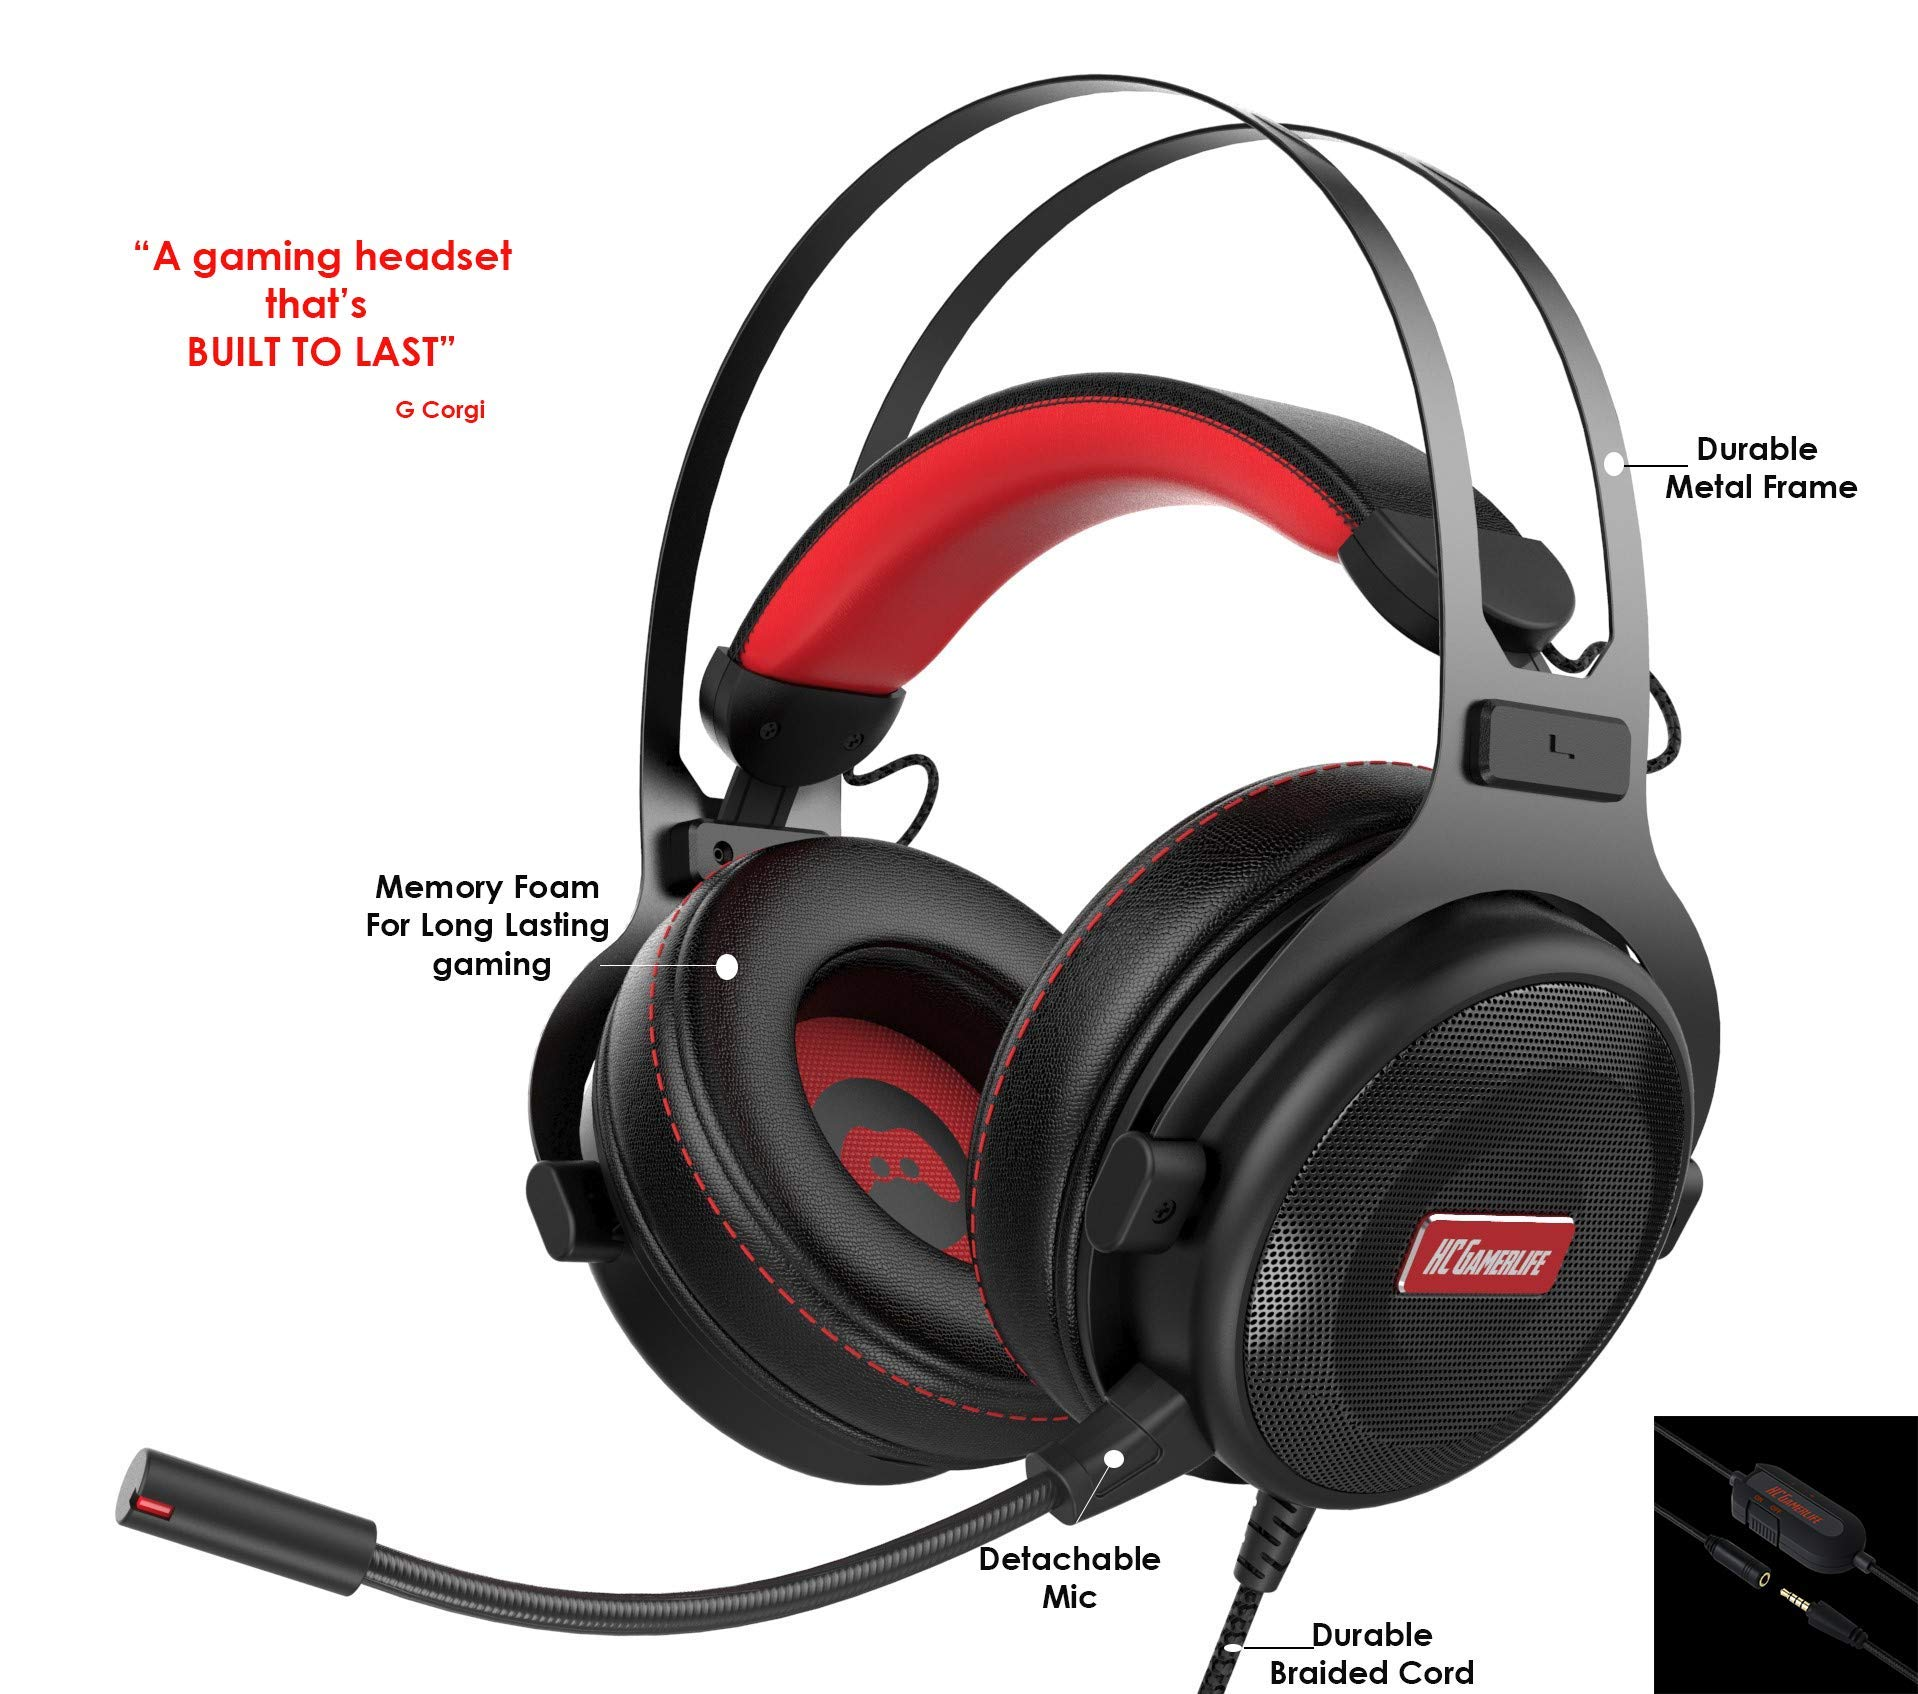 Pro Gaming Headset with Mic (Universal) | Game Changing Premium 3D HD Stereo Sound Video Gamer Wired Headphones for Xbox One, PS4, PC, Laptop and Mobile Device | 3.5mm Connection | HC Gamer Life